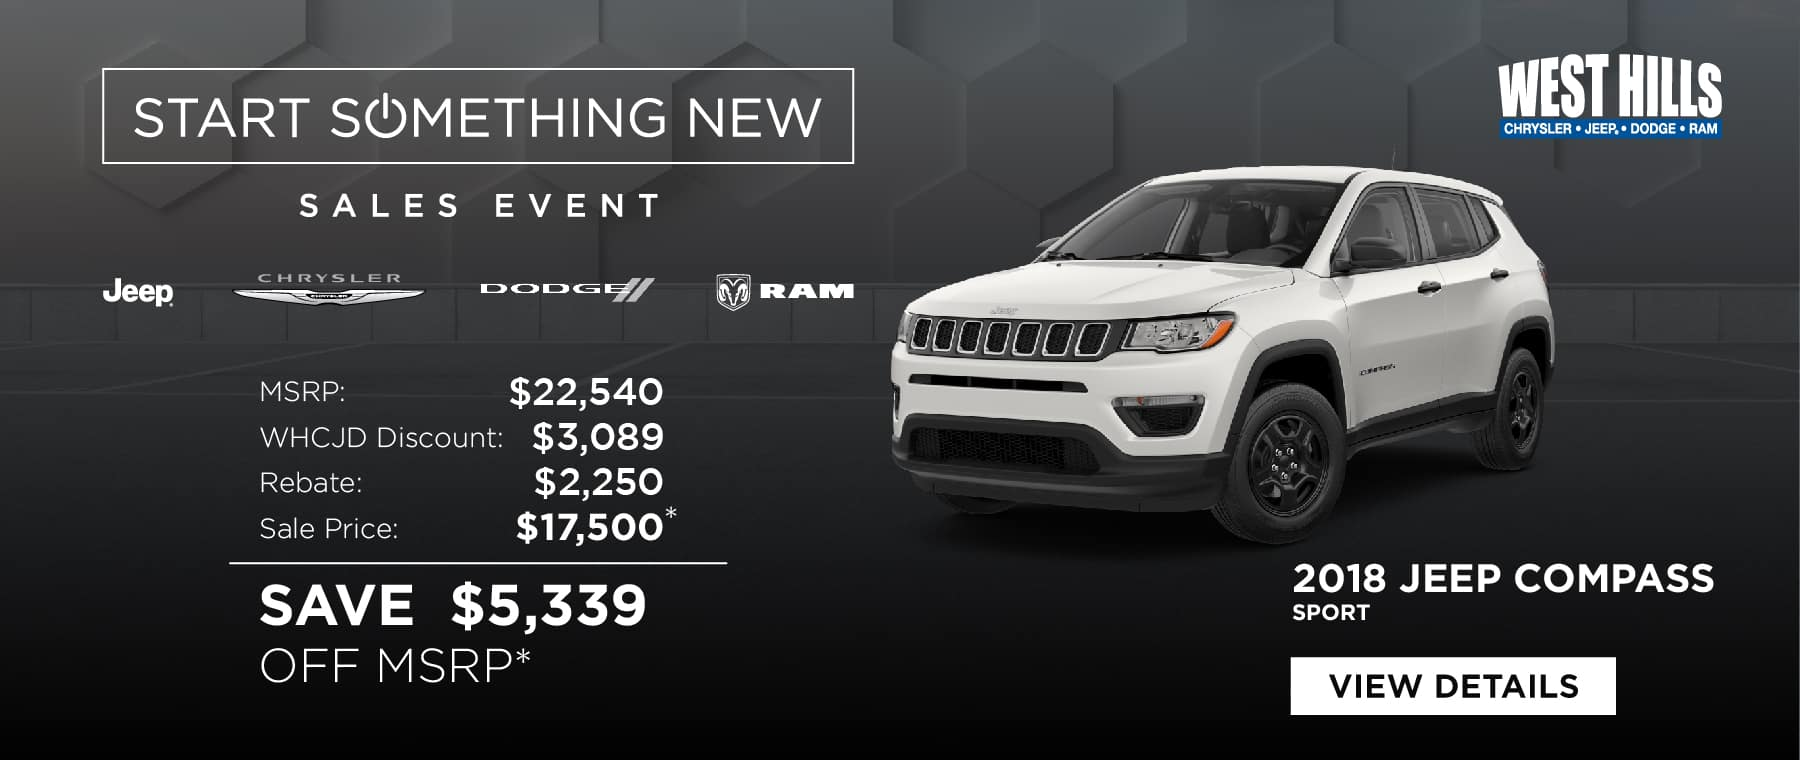 2018 Jeep Compass Sport  MSRP: $22,540 WHCJD Discount: $3,089 Rebate: $2,250 Sale Price: $17,500* Including Accessories SAVE $5,339 OFF MSRP*  *Offer valid on 2018 Jeep Compass Sport. VIN: 3C4NJCAB6JT420709. Subject to credit approval. Down payment and monthly payment may vary. MSRP $22,540. WHCJDR Discount $3,089. Rebate of $2,250. Sale Price starting at $17,500, including accessories. Based on approval of program ID: 70CJ1, 46CJU1, 46CJU2, WECJA1. Excludes taxes, tags, registration and title, insurance and dealer charges. A negotiable dealer documentary service fee of up to $150 may be added to the sale price or capitalized cost. Exp. 1/31/2019.